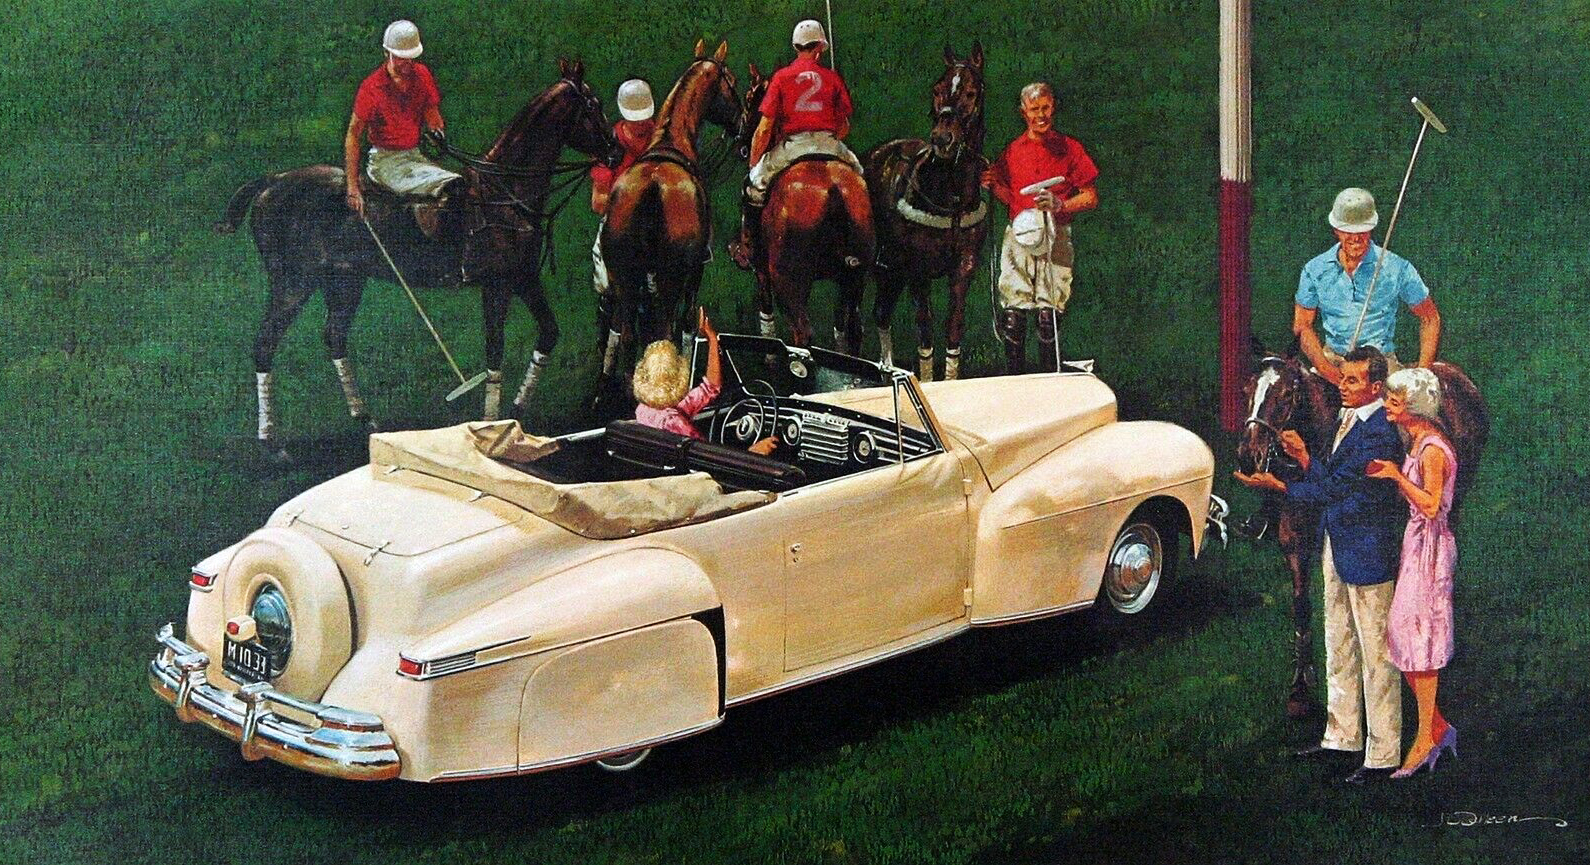 1946. Lincoln Continental. Illustrated by James B. Deneen